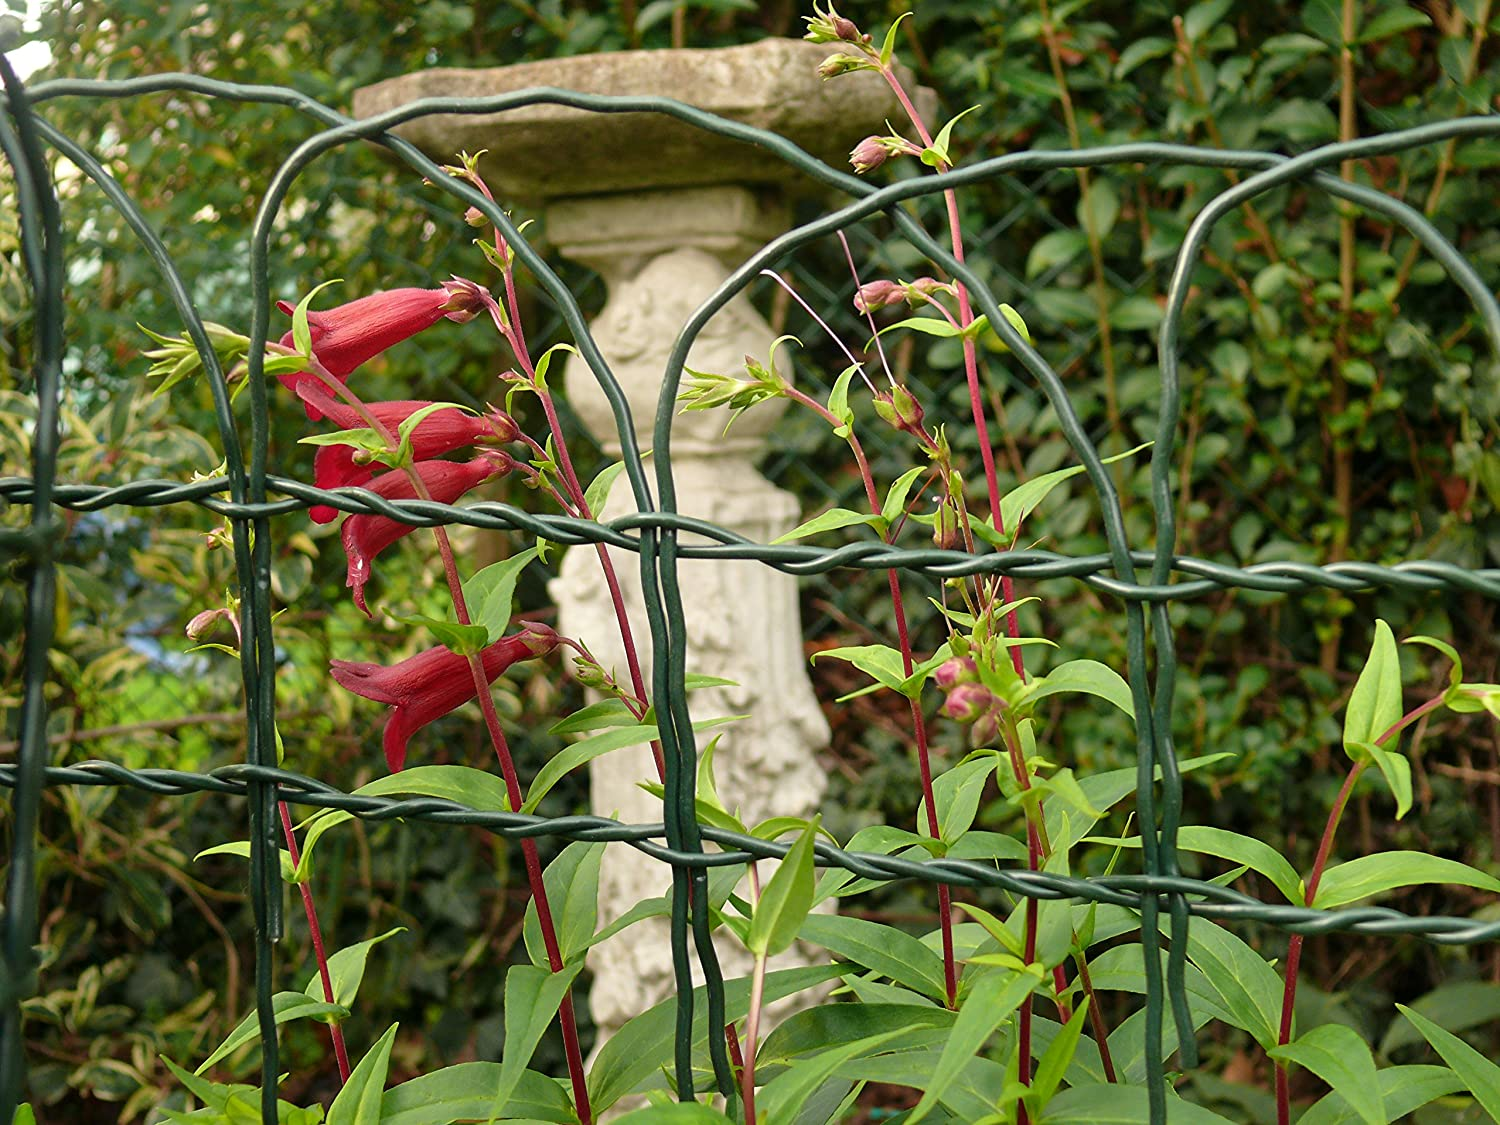 Decorative Garden Fencing 0.4m x 10m Arch Top Green Steel Fence ...